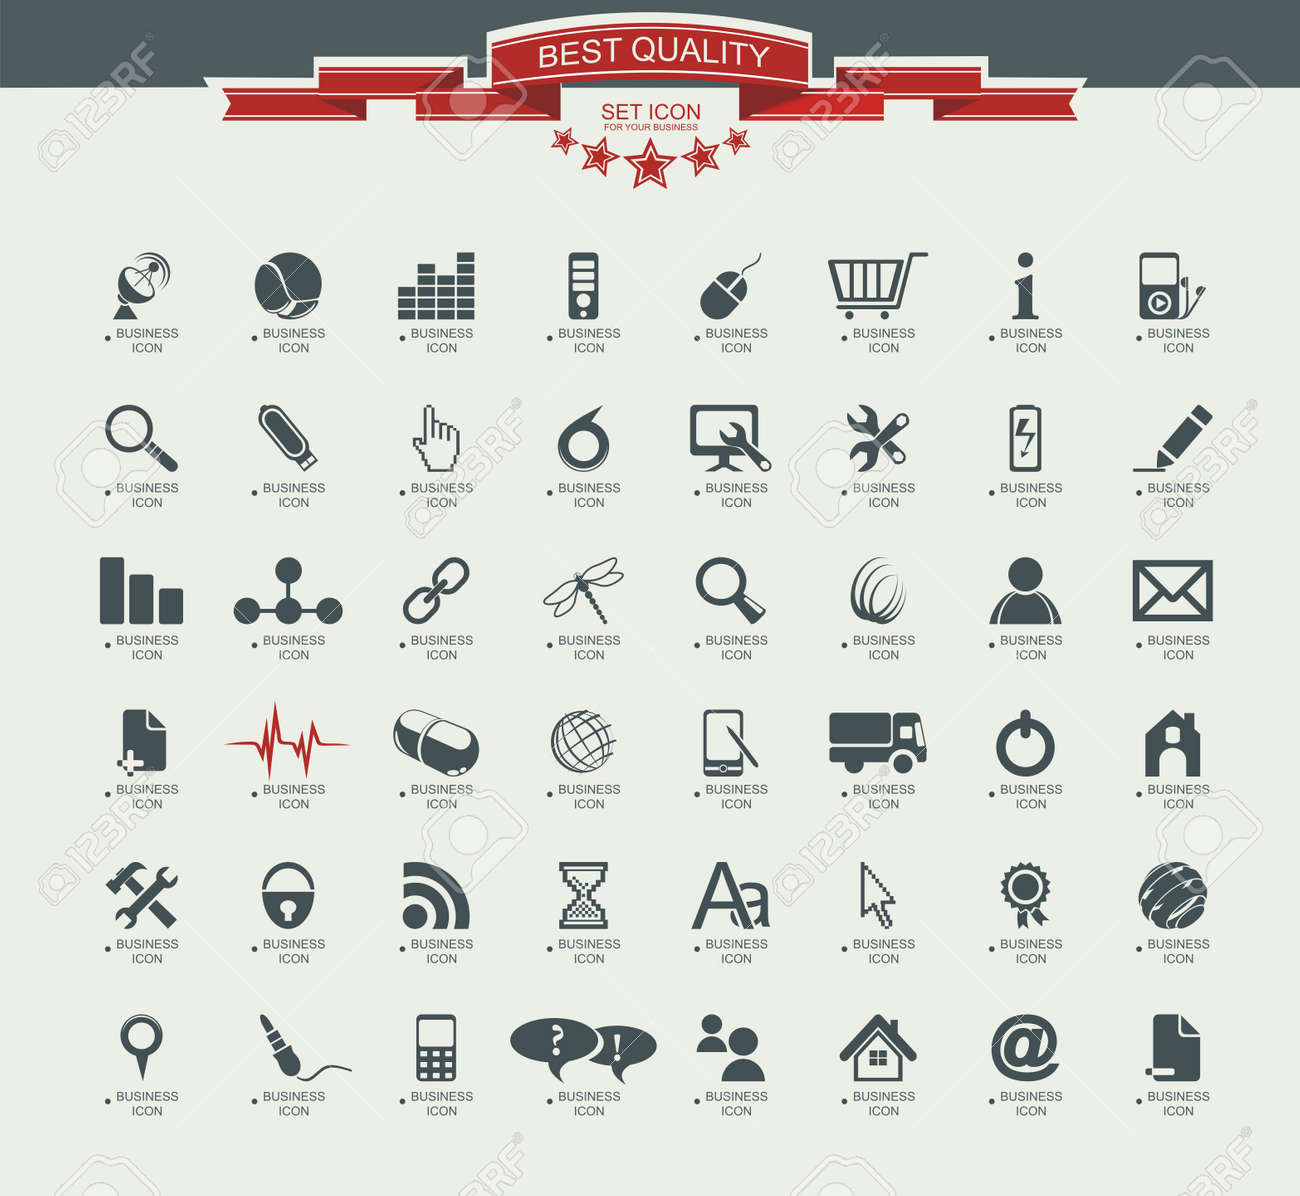 Quality icon Set (Service, Medical, Media, Mail, Mobile, ,Web , Camping icons, Butterfly) Stock Vector - 20915884